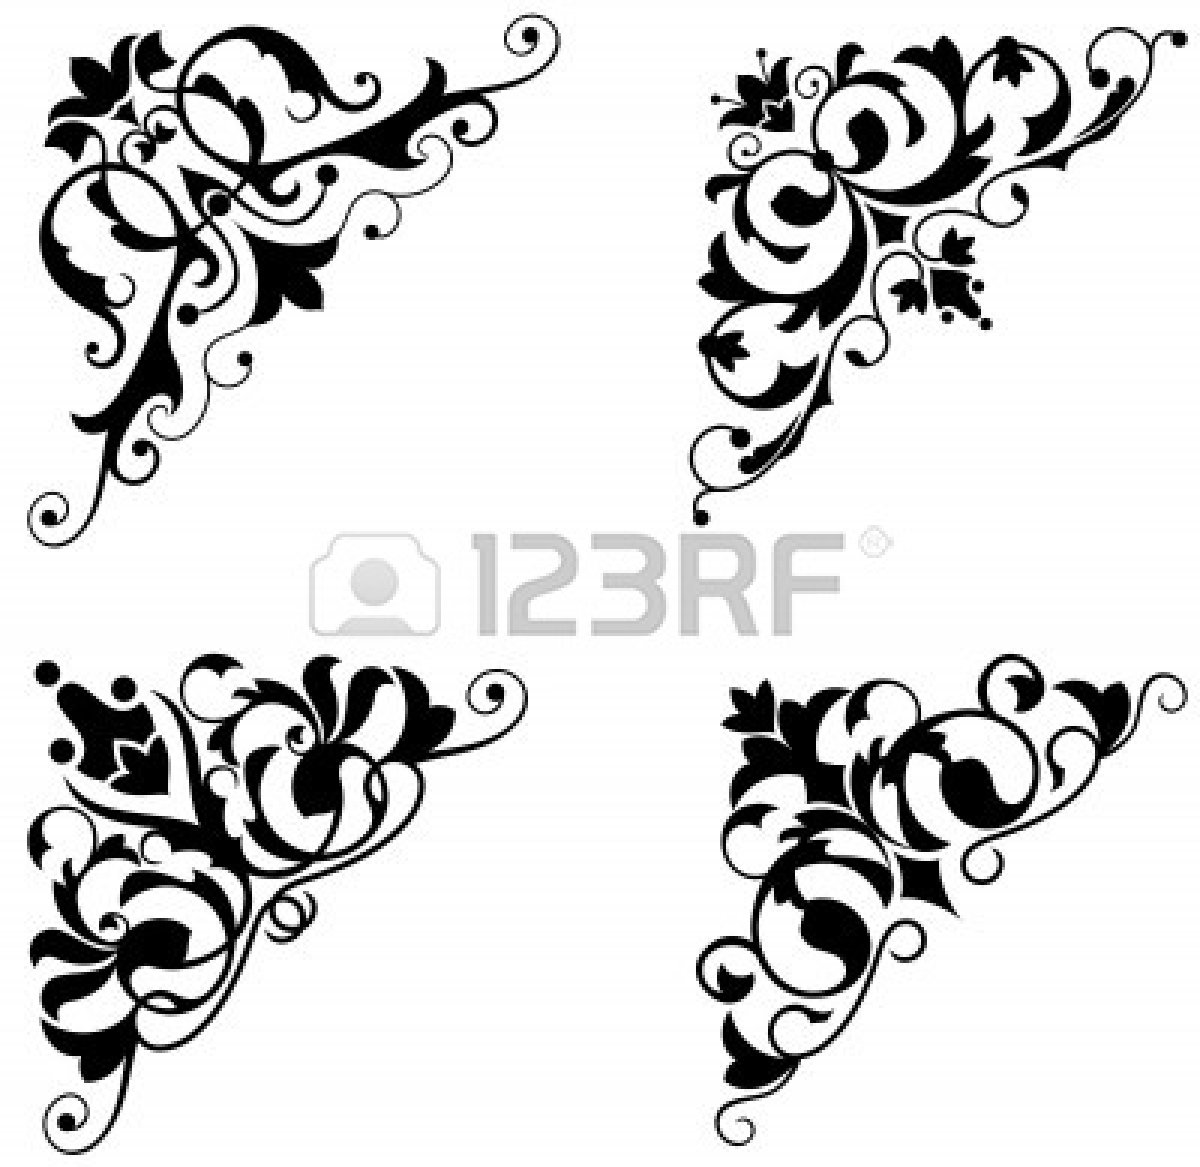 Classical clipart victorian scroll Images Free Scroll Clipart victorian%20scroll%20corner%20clip%20art